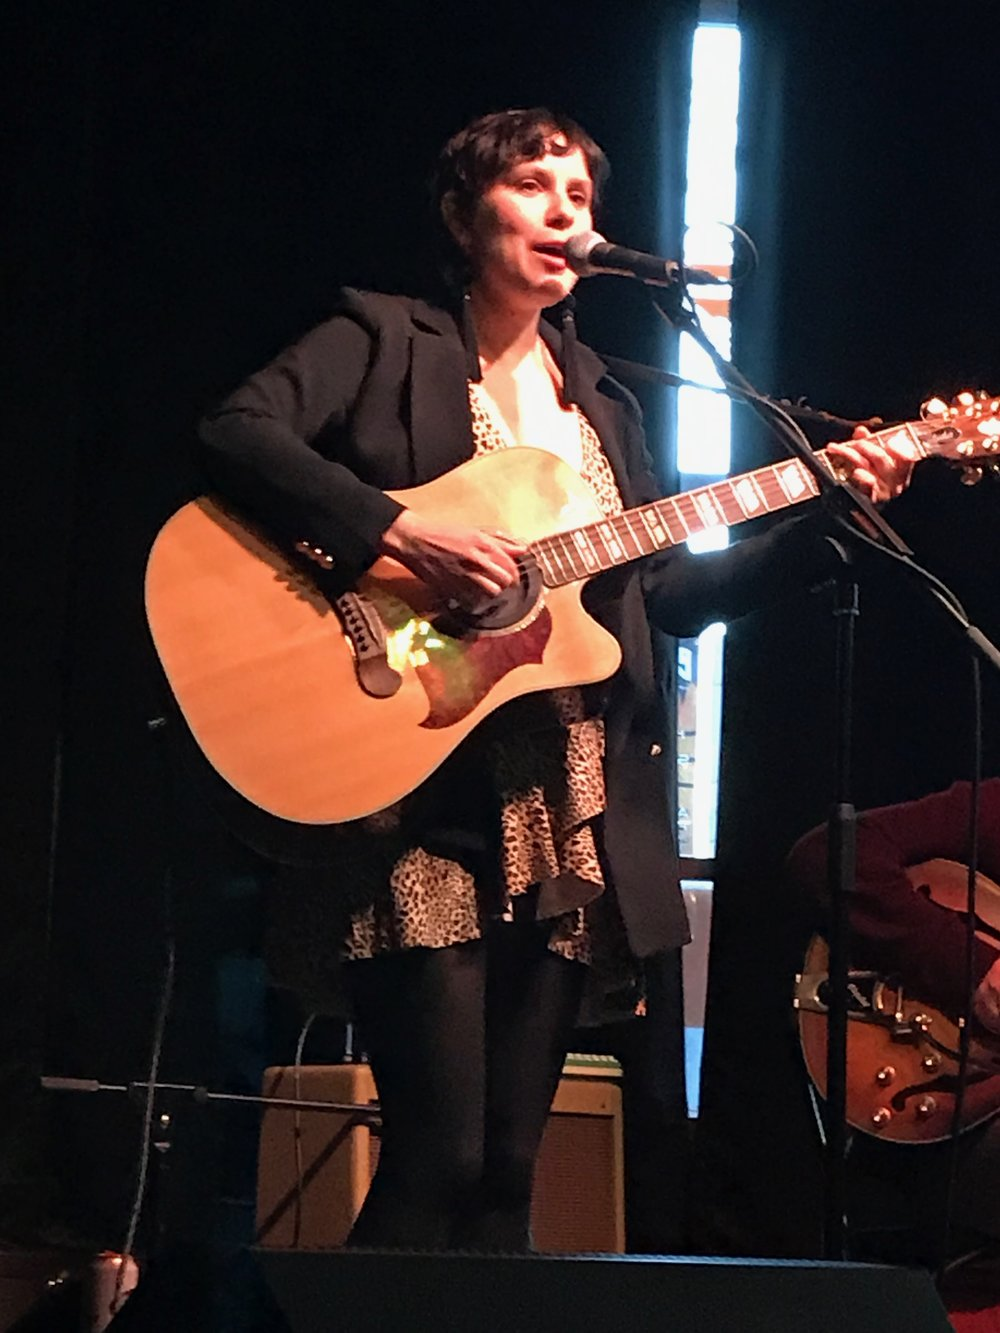 Kristin at the Firefly, April 7, 2019